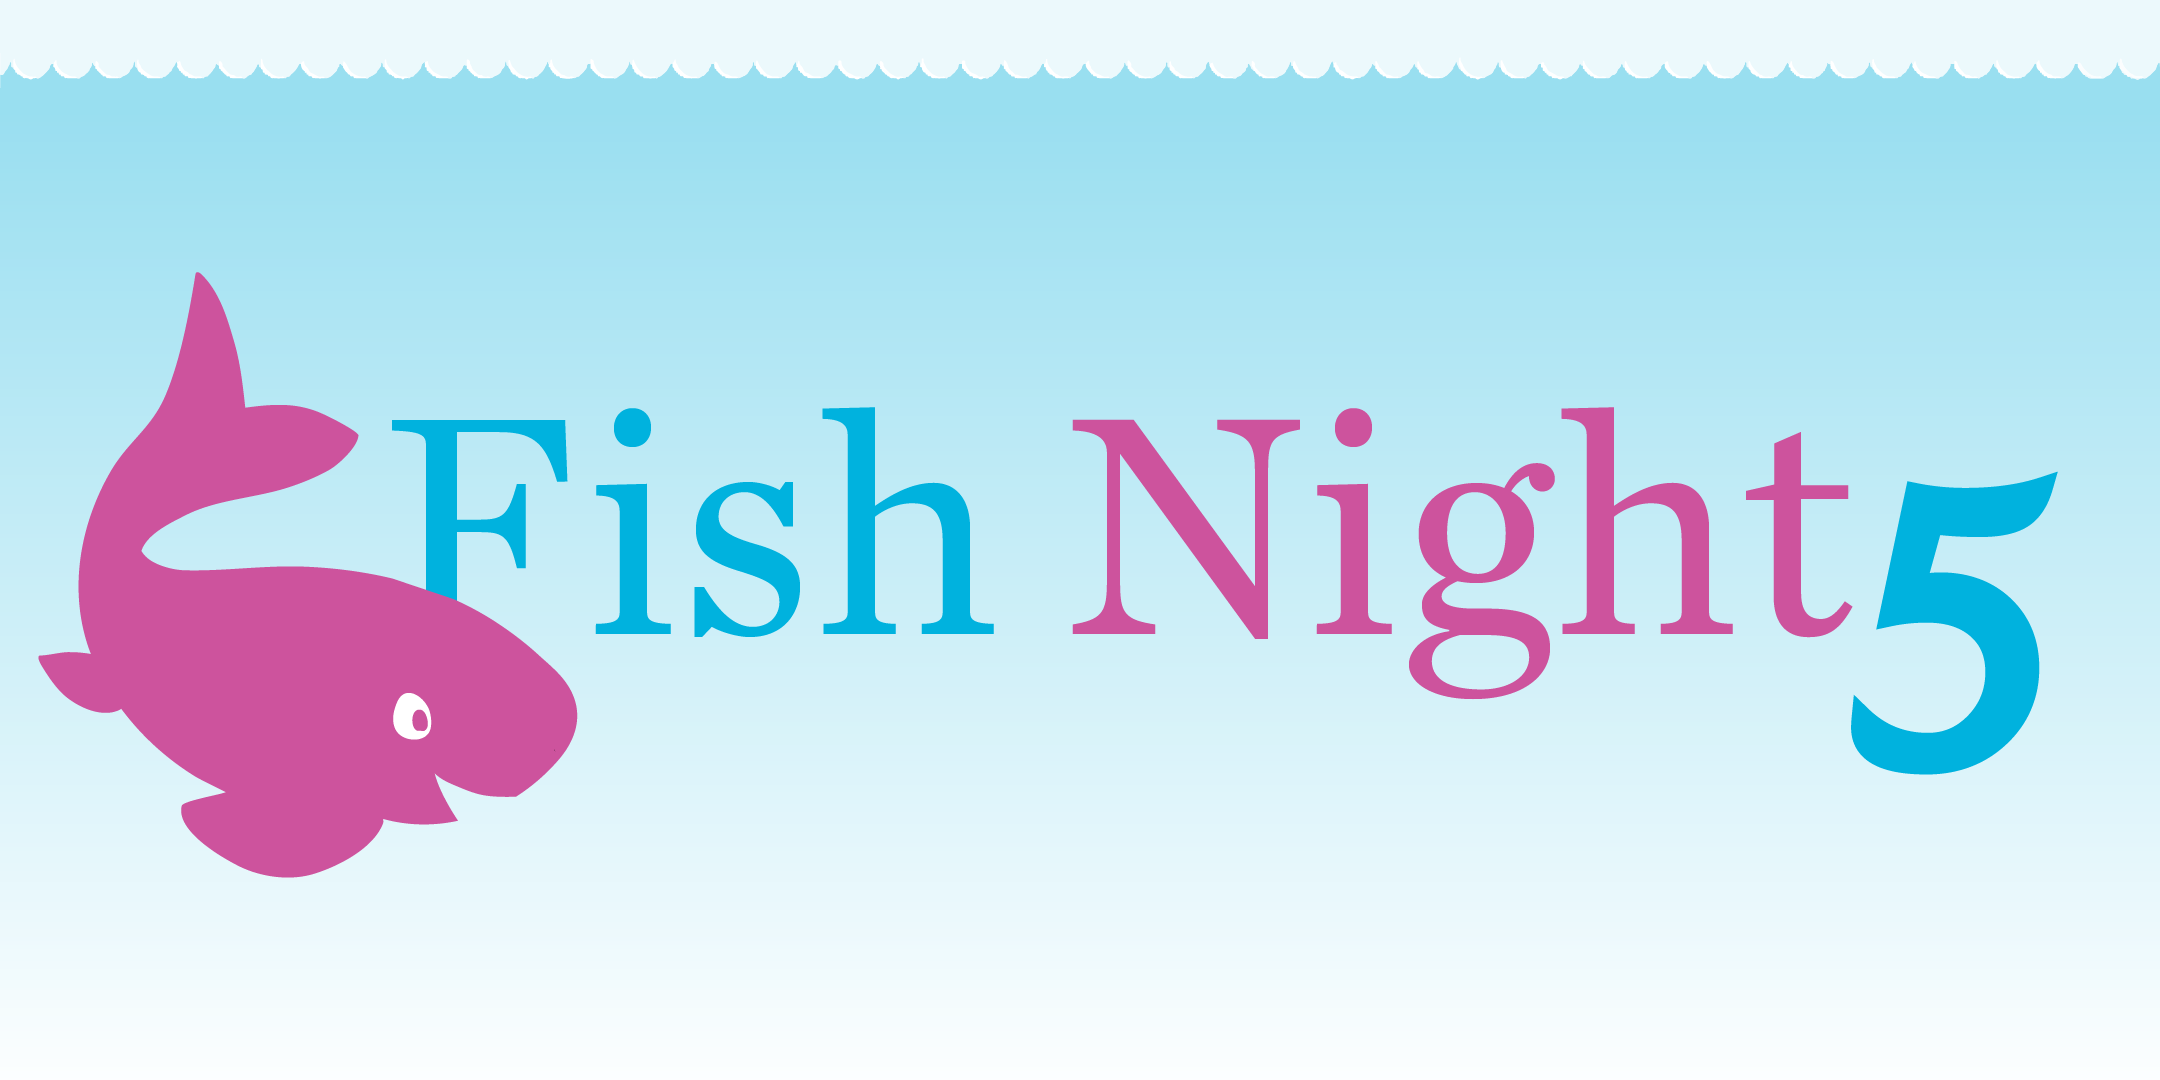 Fish Night 5 logo